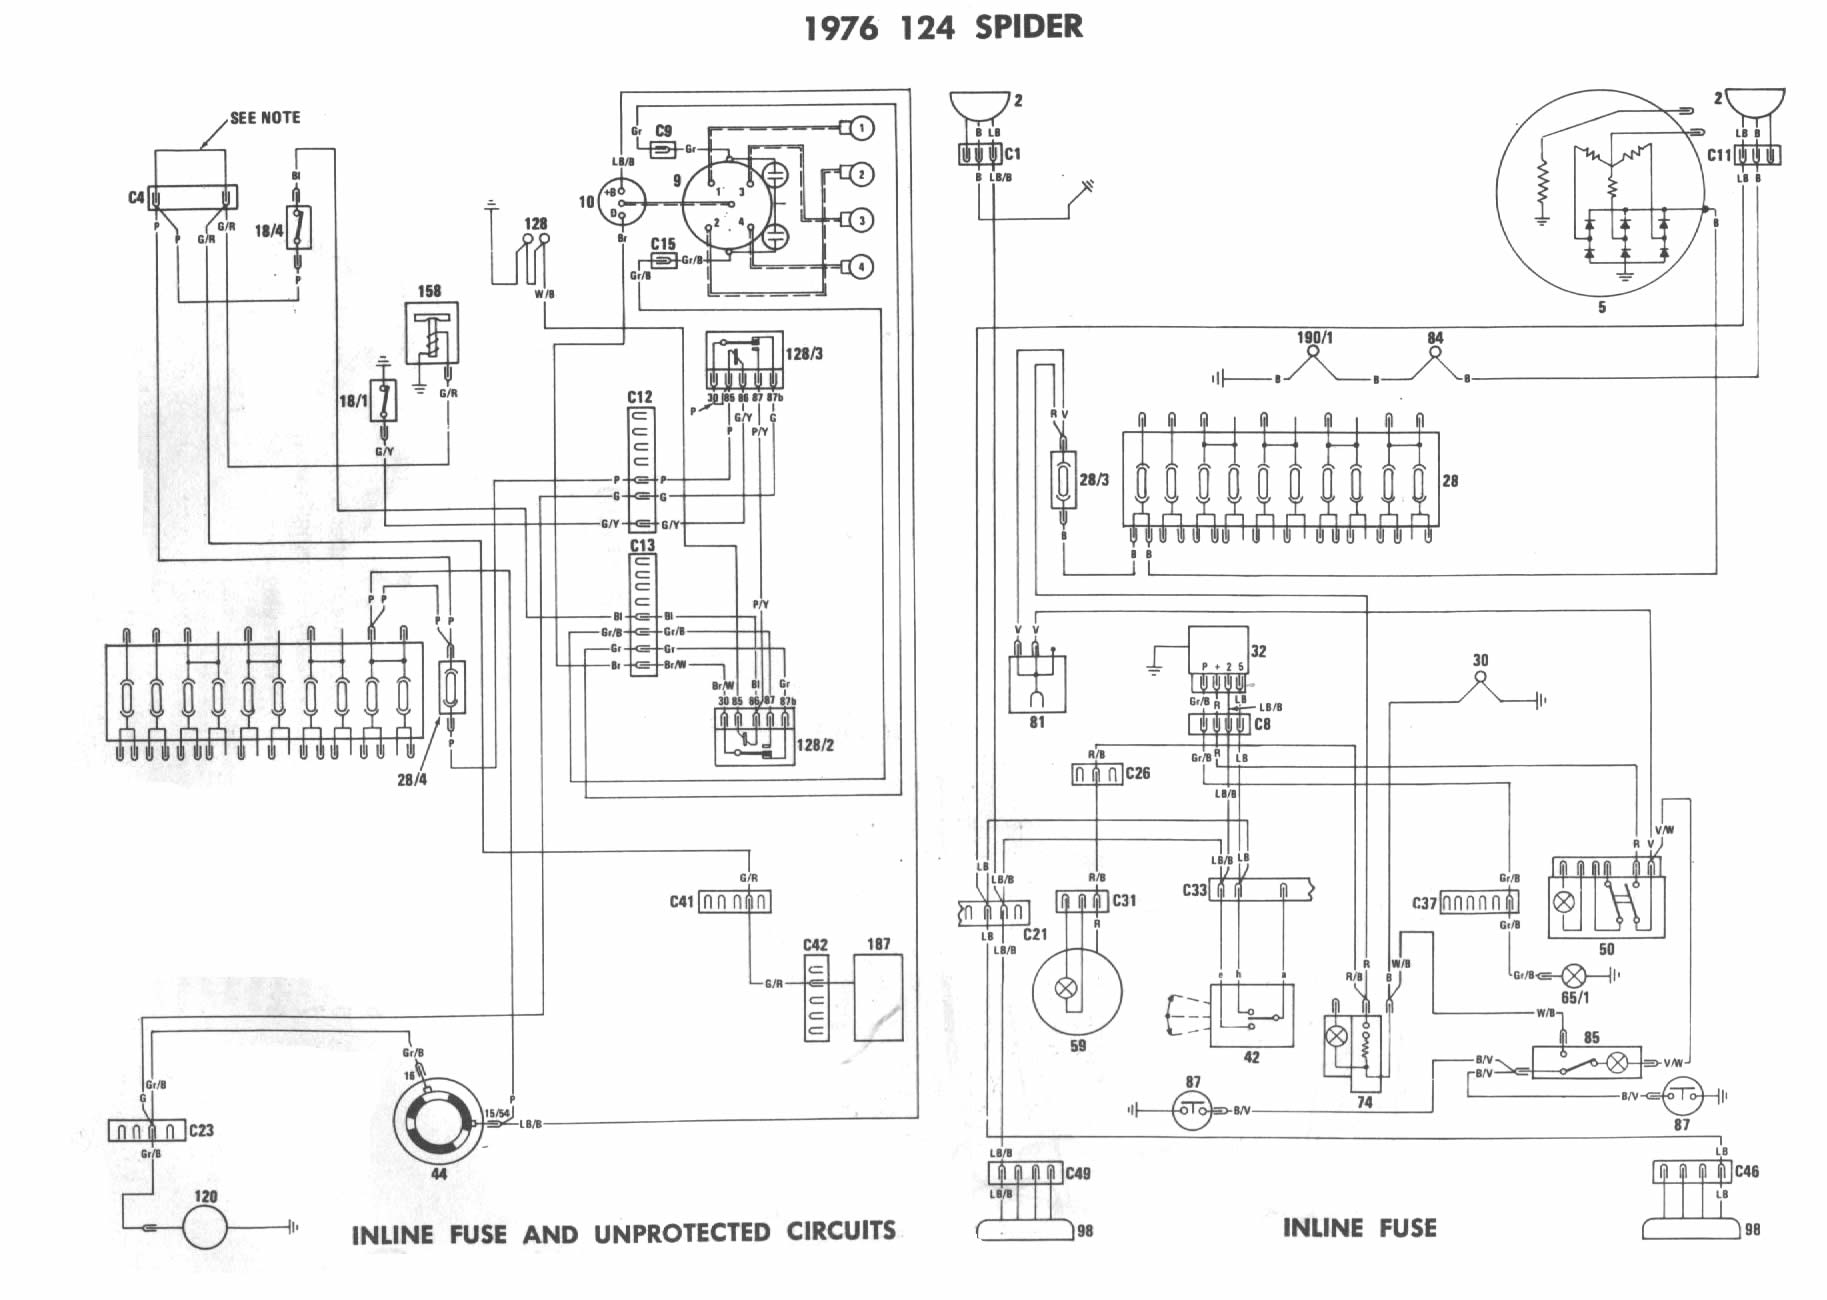 Kz F besides Maxresdefault further Headlight in addition Maxresdefault besides Toyota Lexus Electrical Wiring Diagram Cd. on fiat ducato wiring diagram